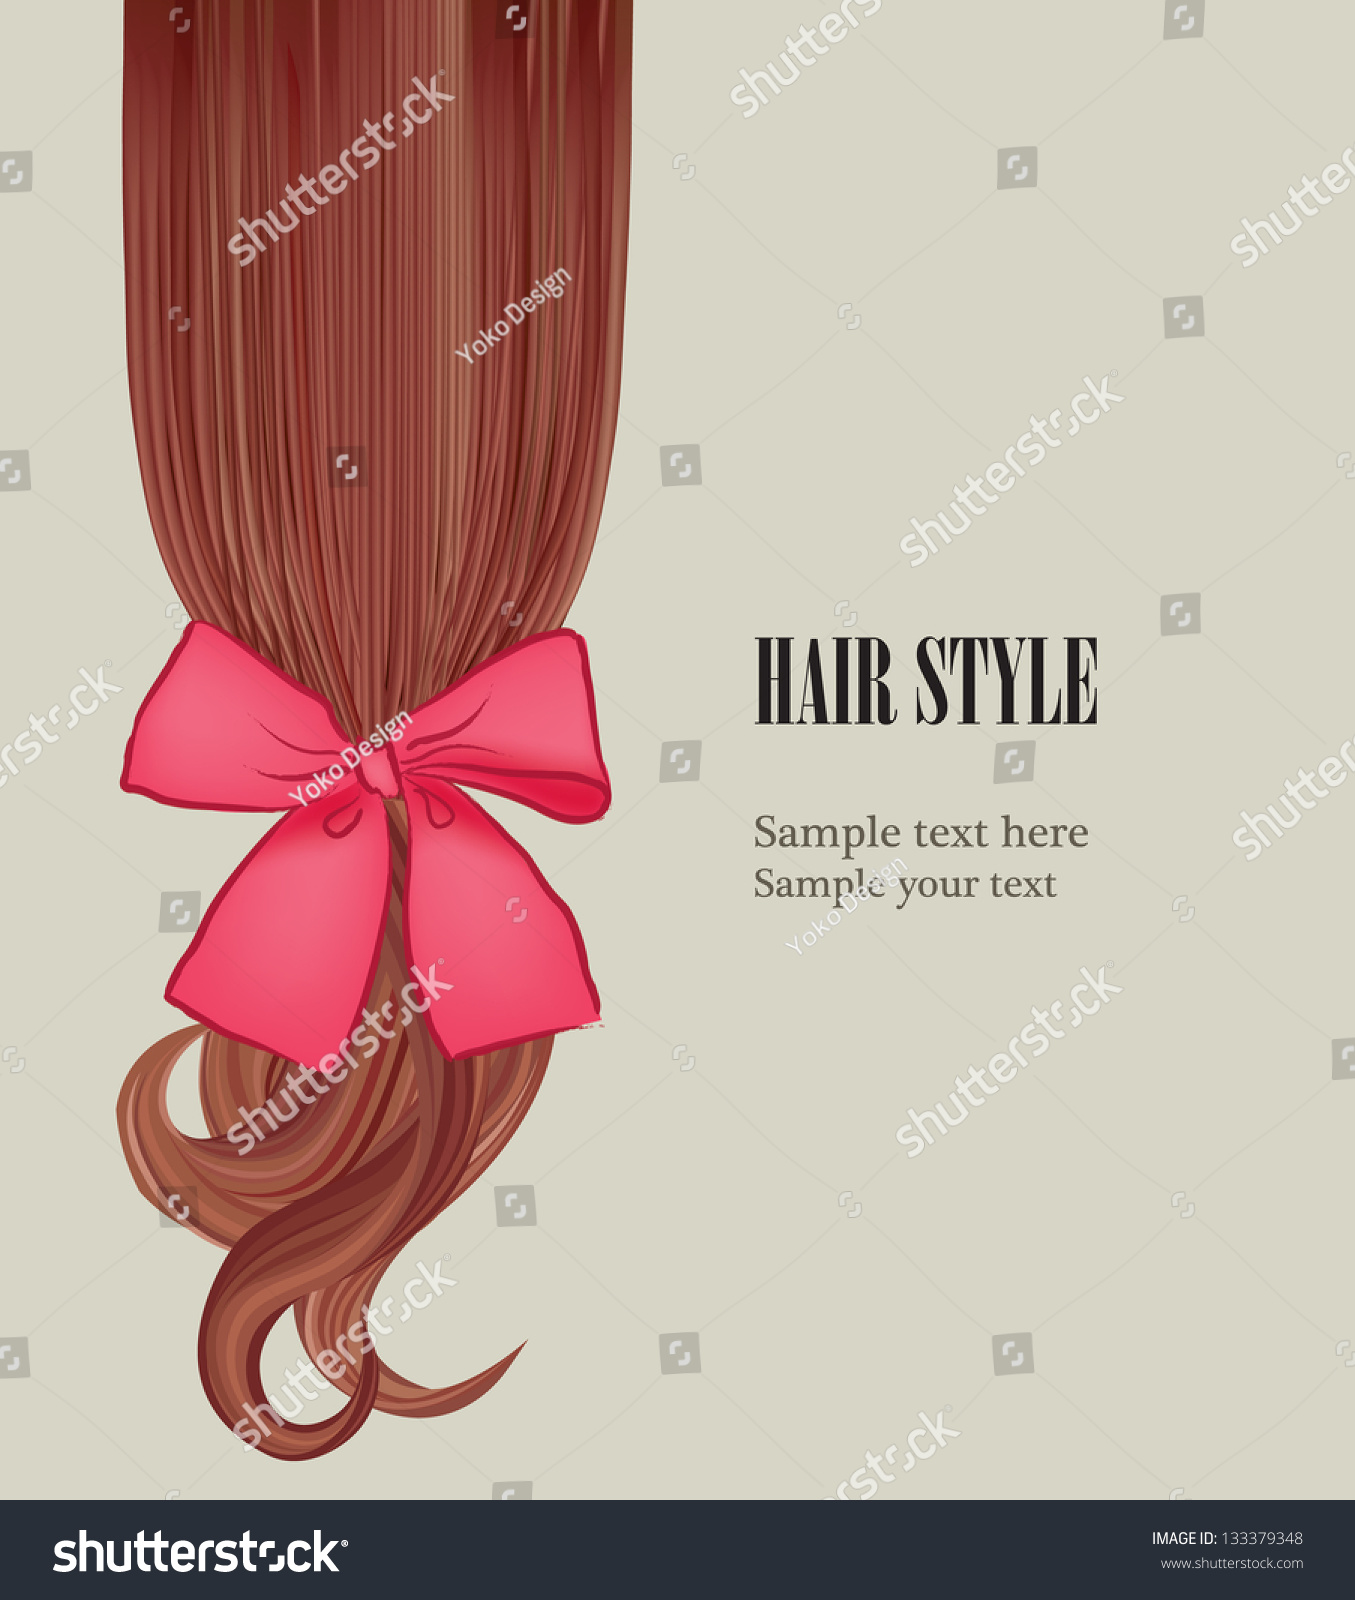 hair design backgrounds - photo #41